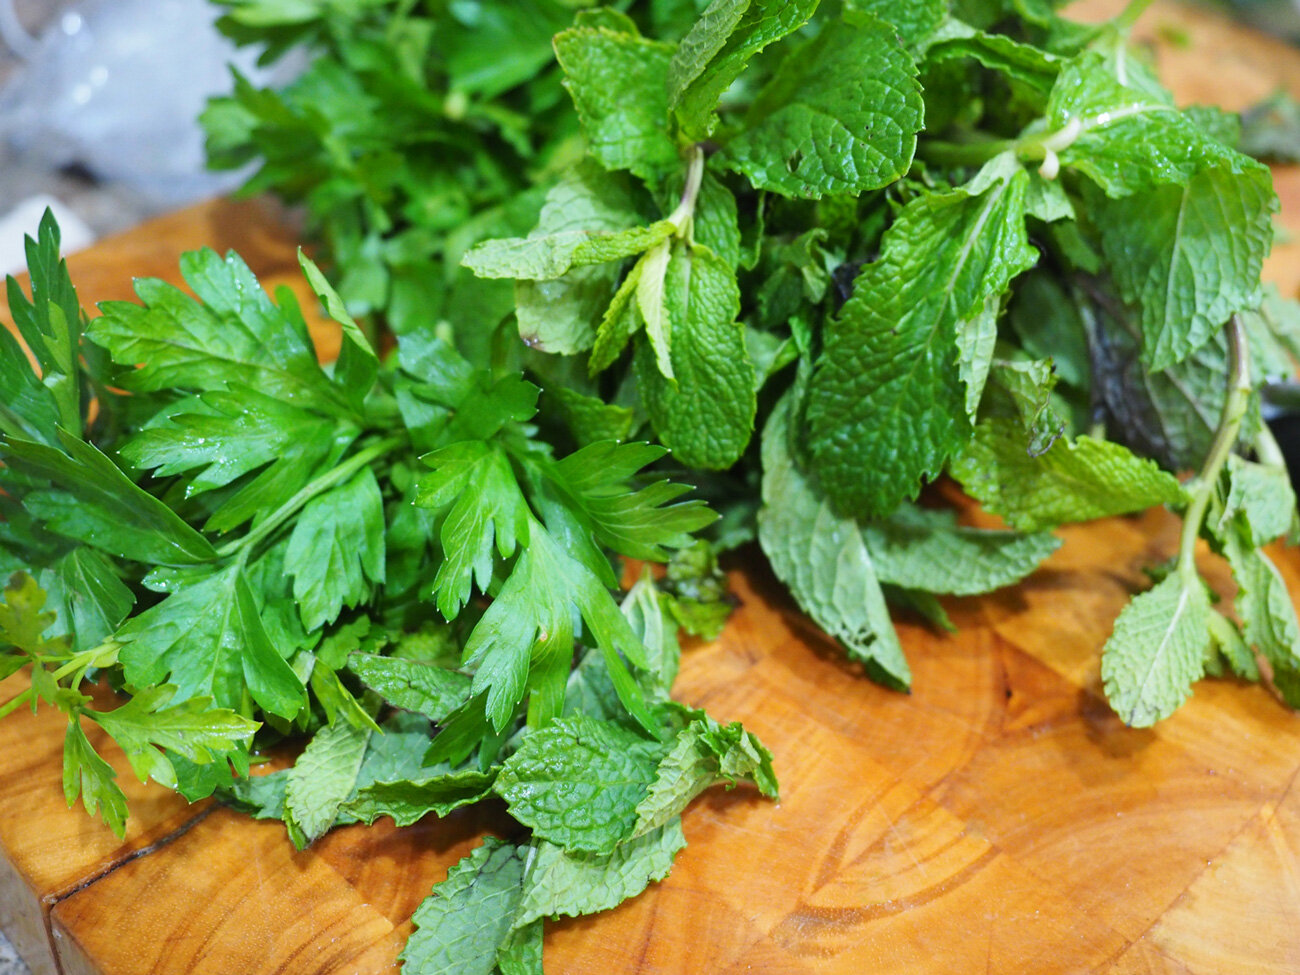 Fresh mint and parsley